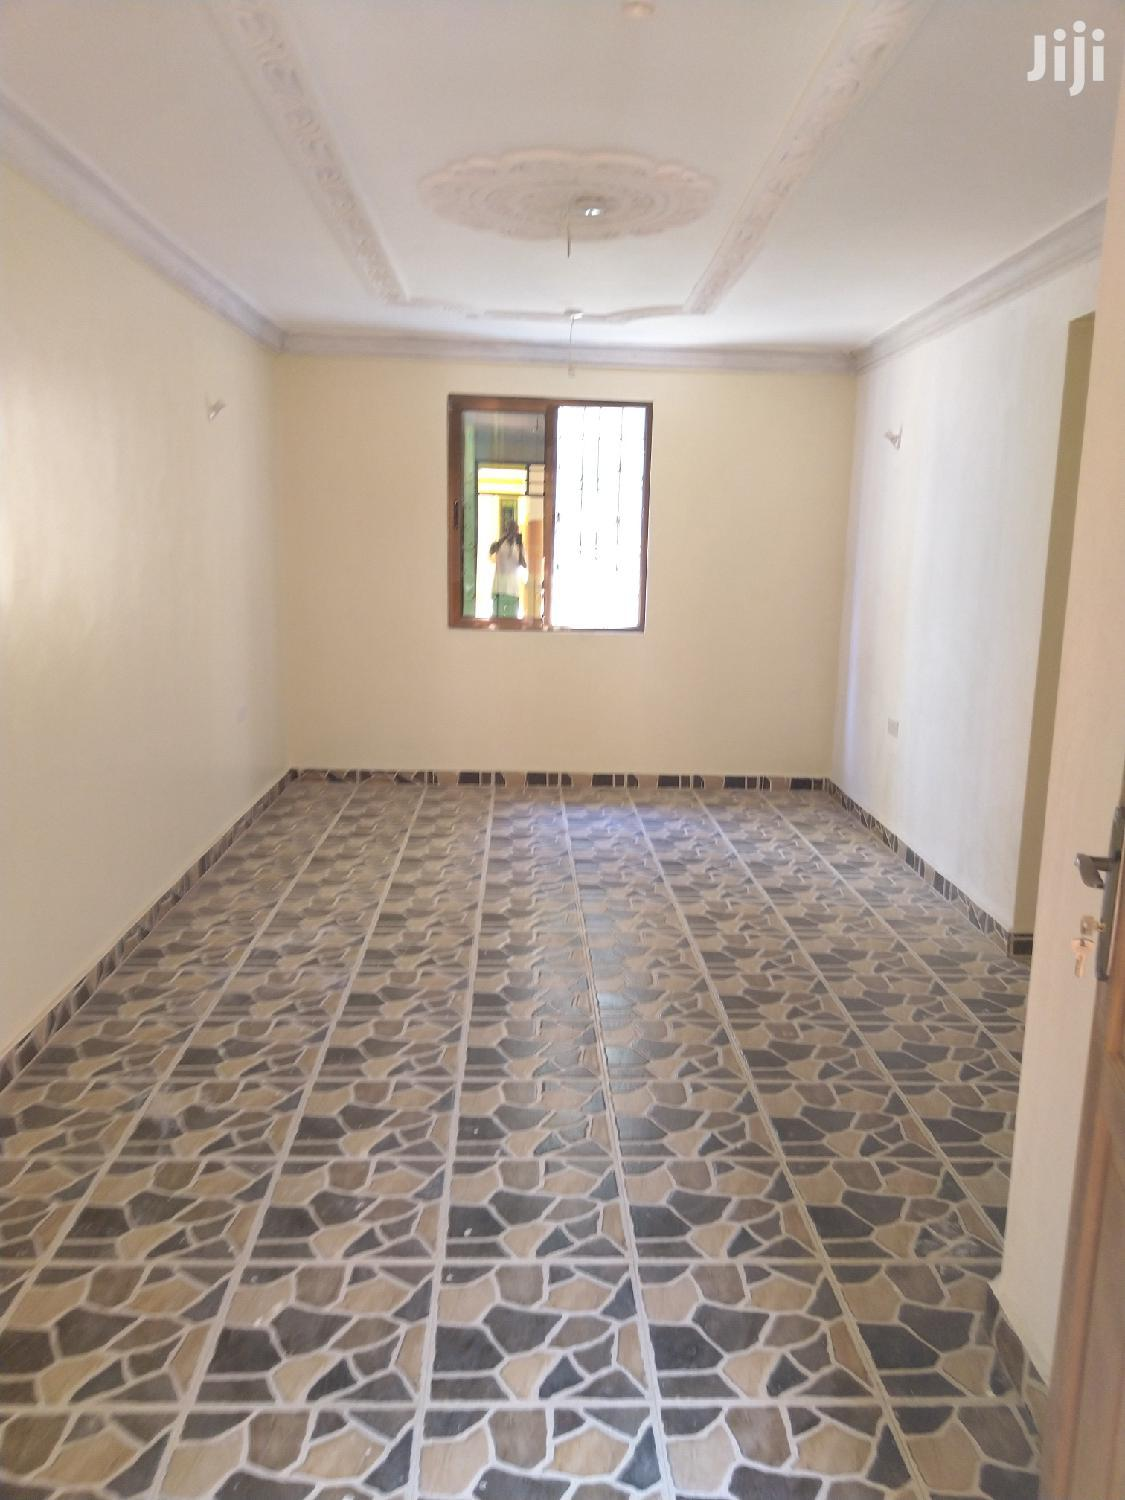 Modern Brand New 2br With Ensuite Close to Nyali Cinemax | Houses & Apartments For Rent for sale in Mkomani, Mombasa, Kenya